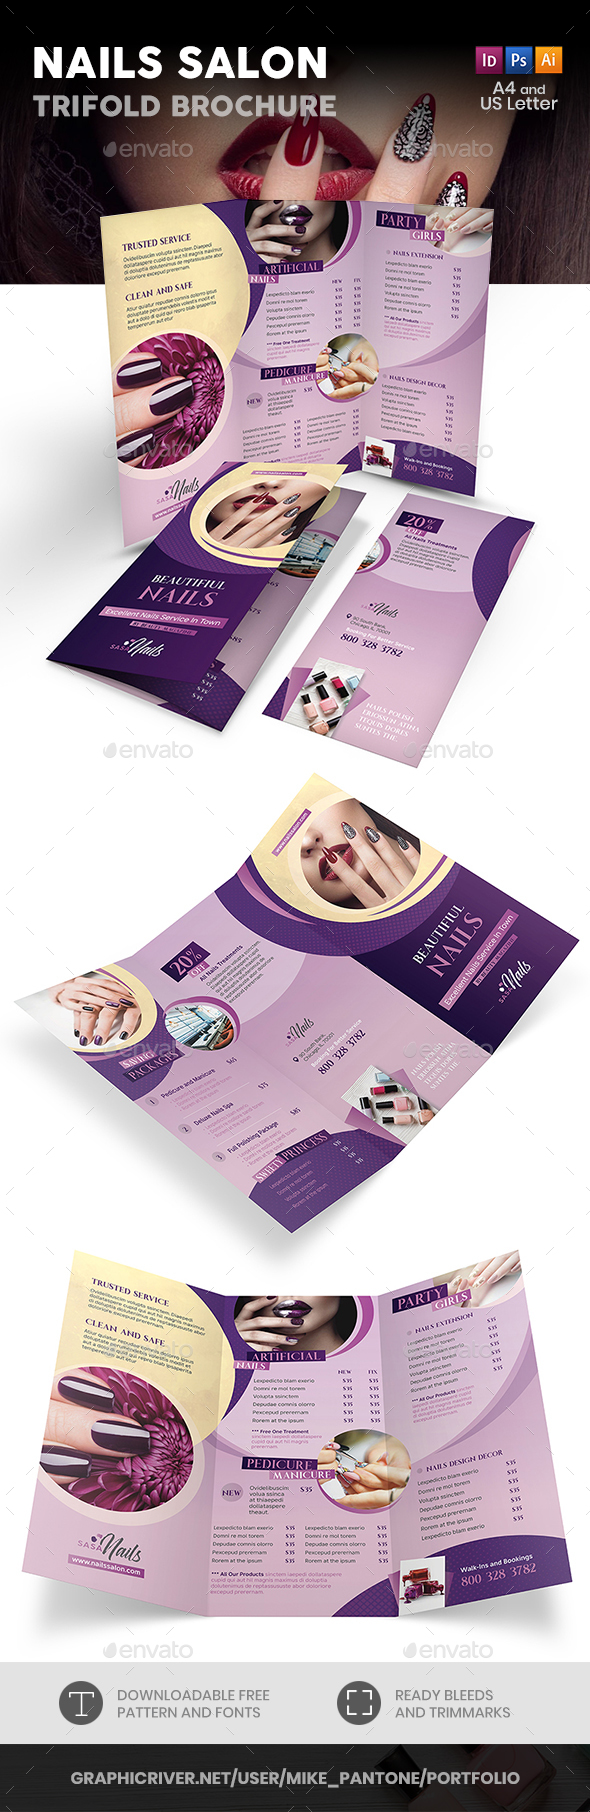 Nails Salon Trifold Brochure - Informational Brochures